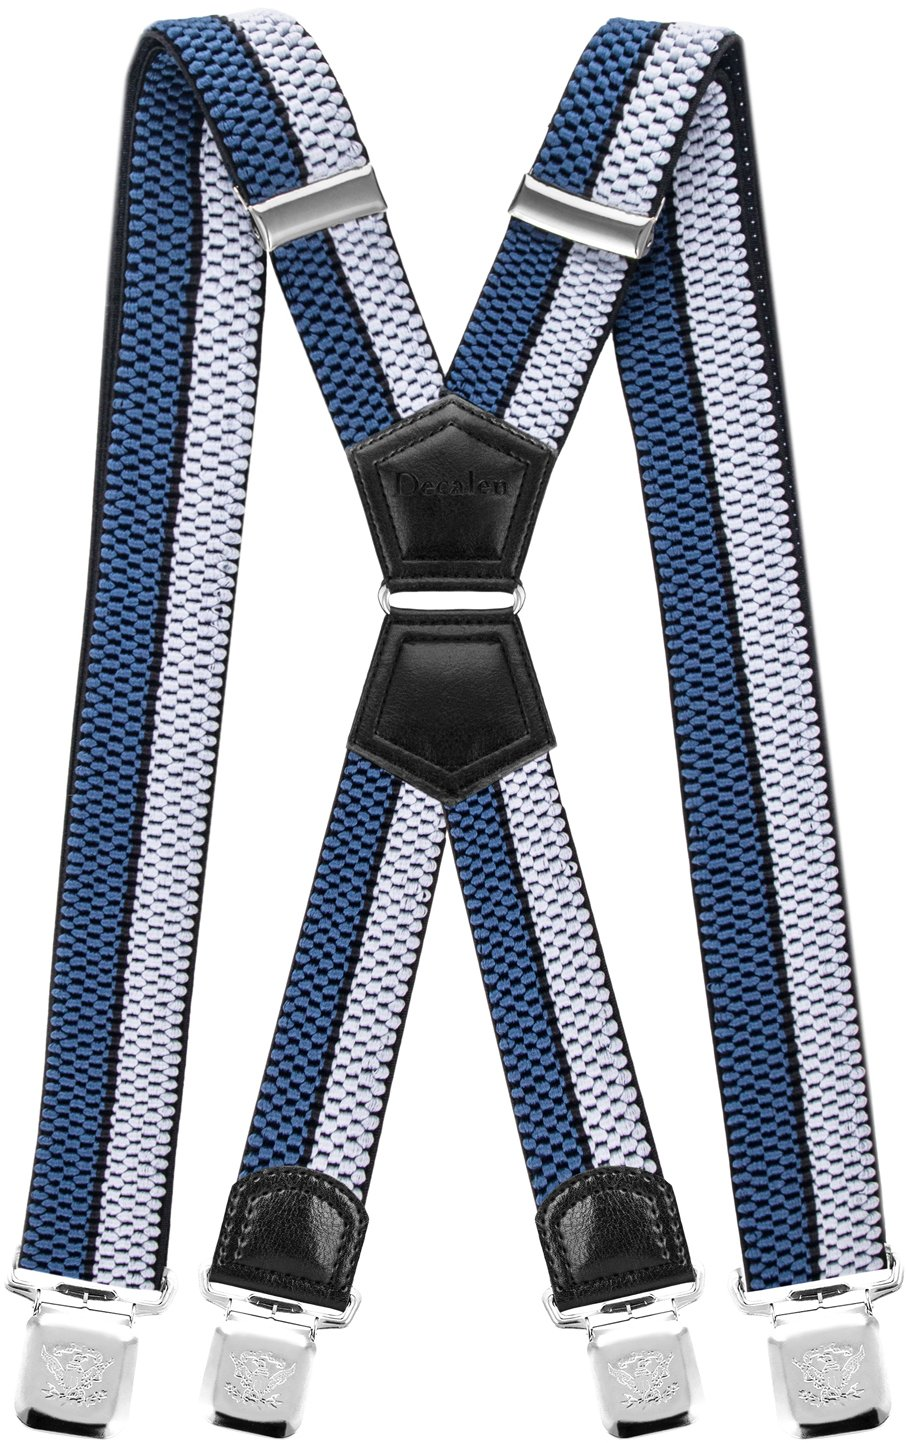 Mens Suspenders X Style Very Strong Clips Adjustable One Size Fits All Heavy Duty Braces (Silver Black Blue)